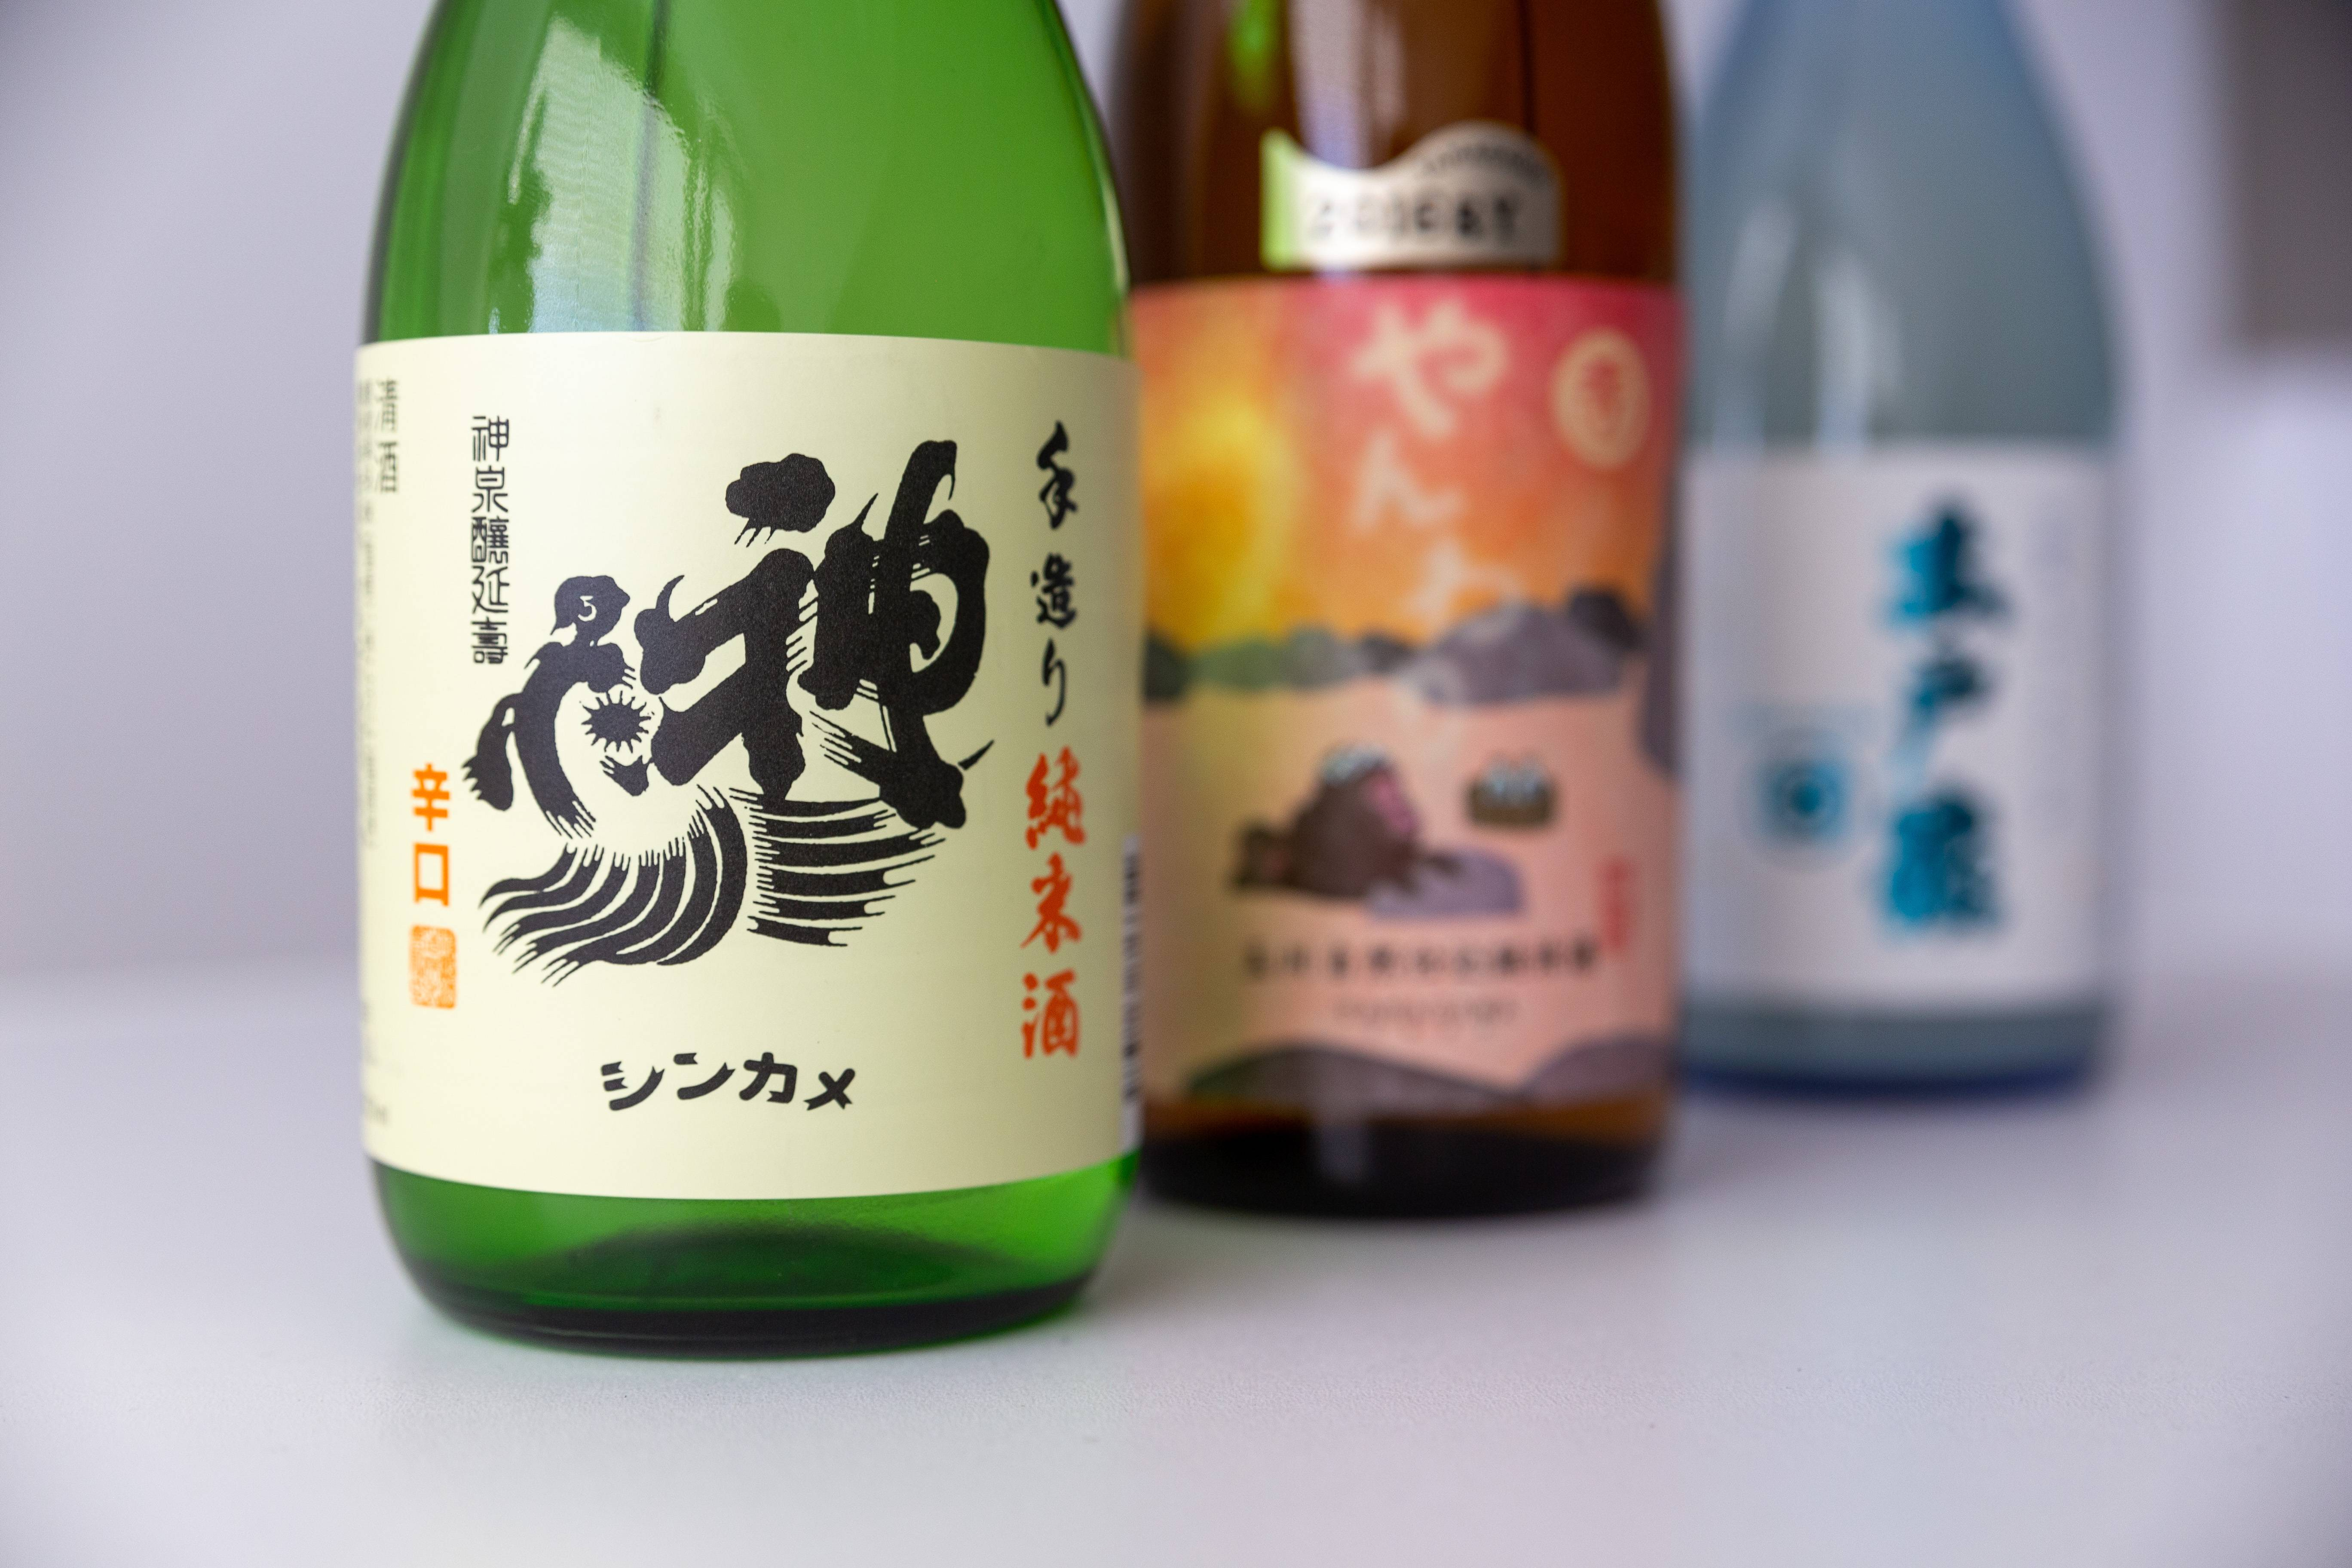 New additions to our sake collection